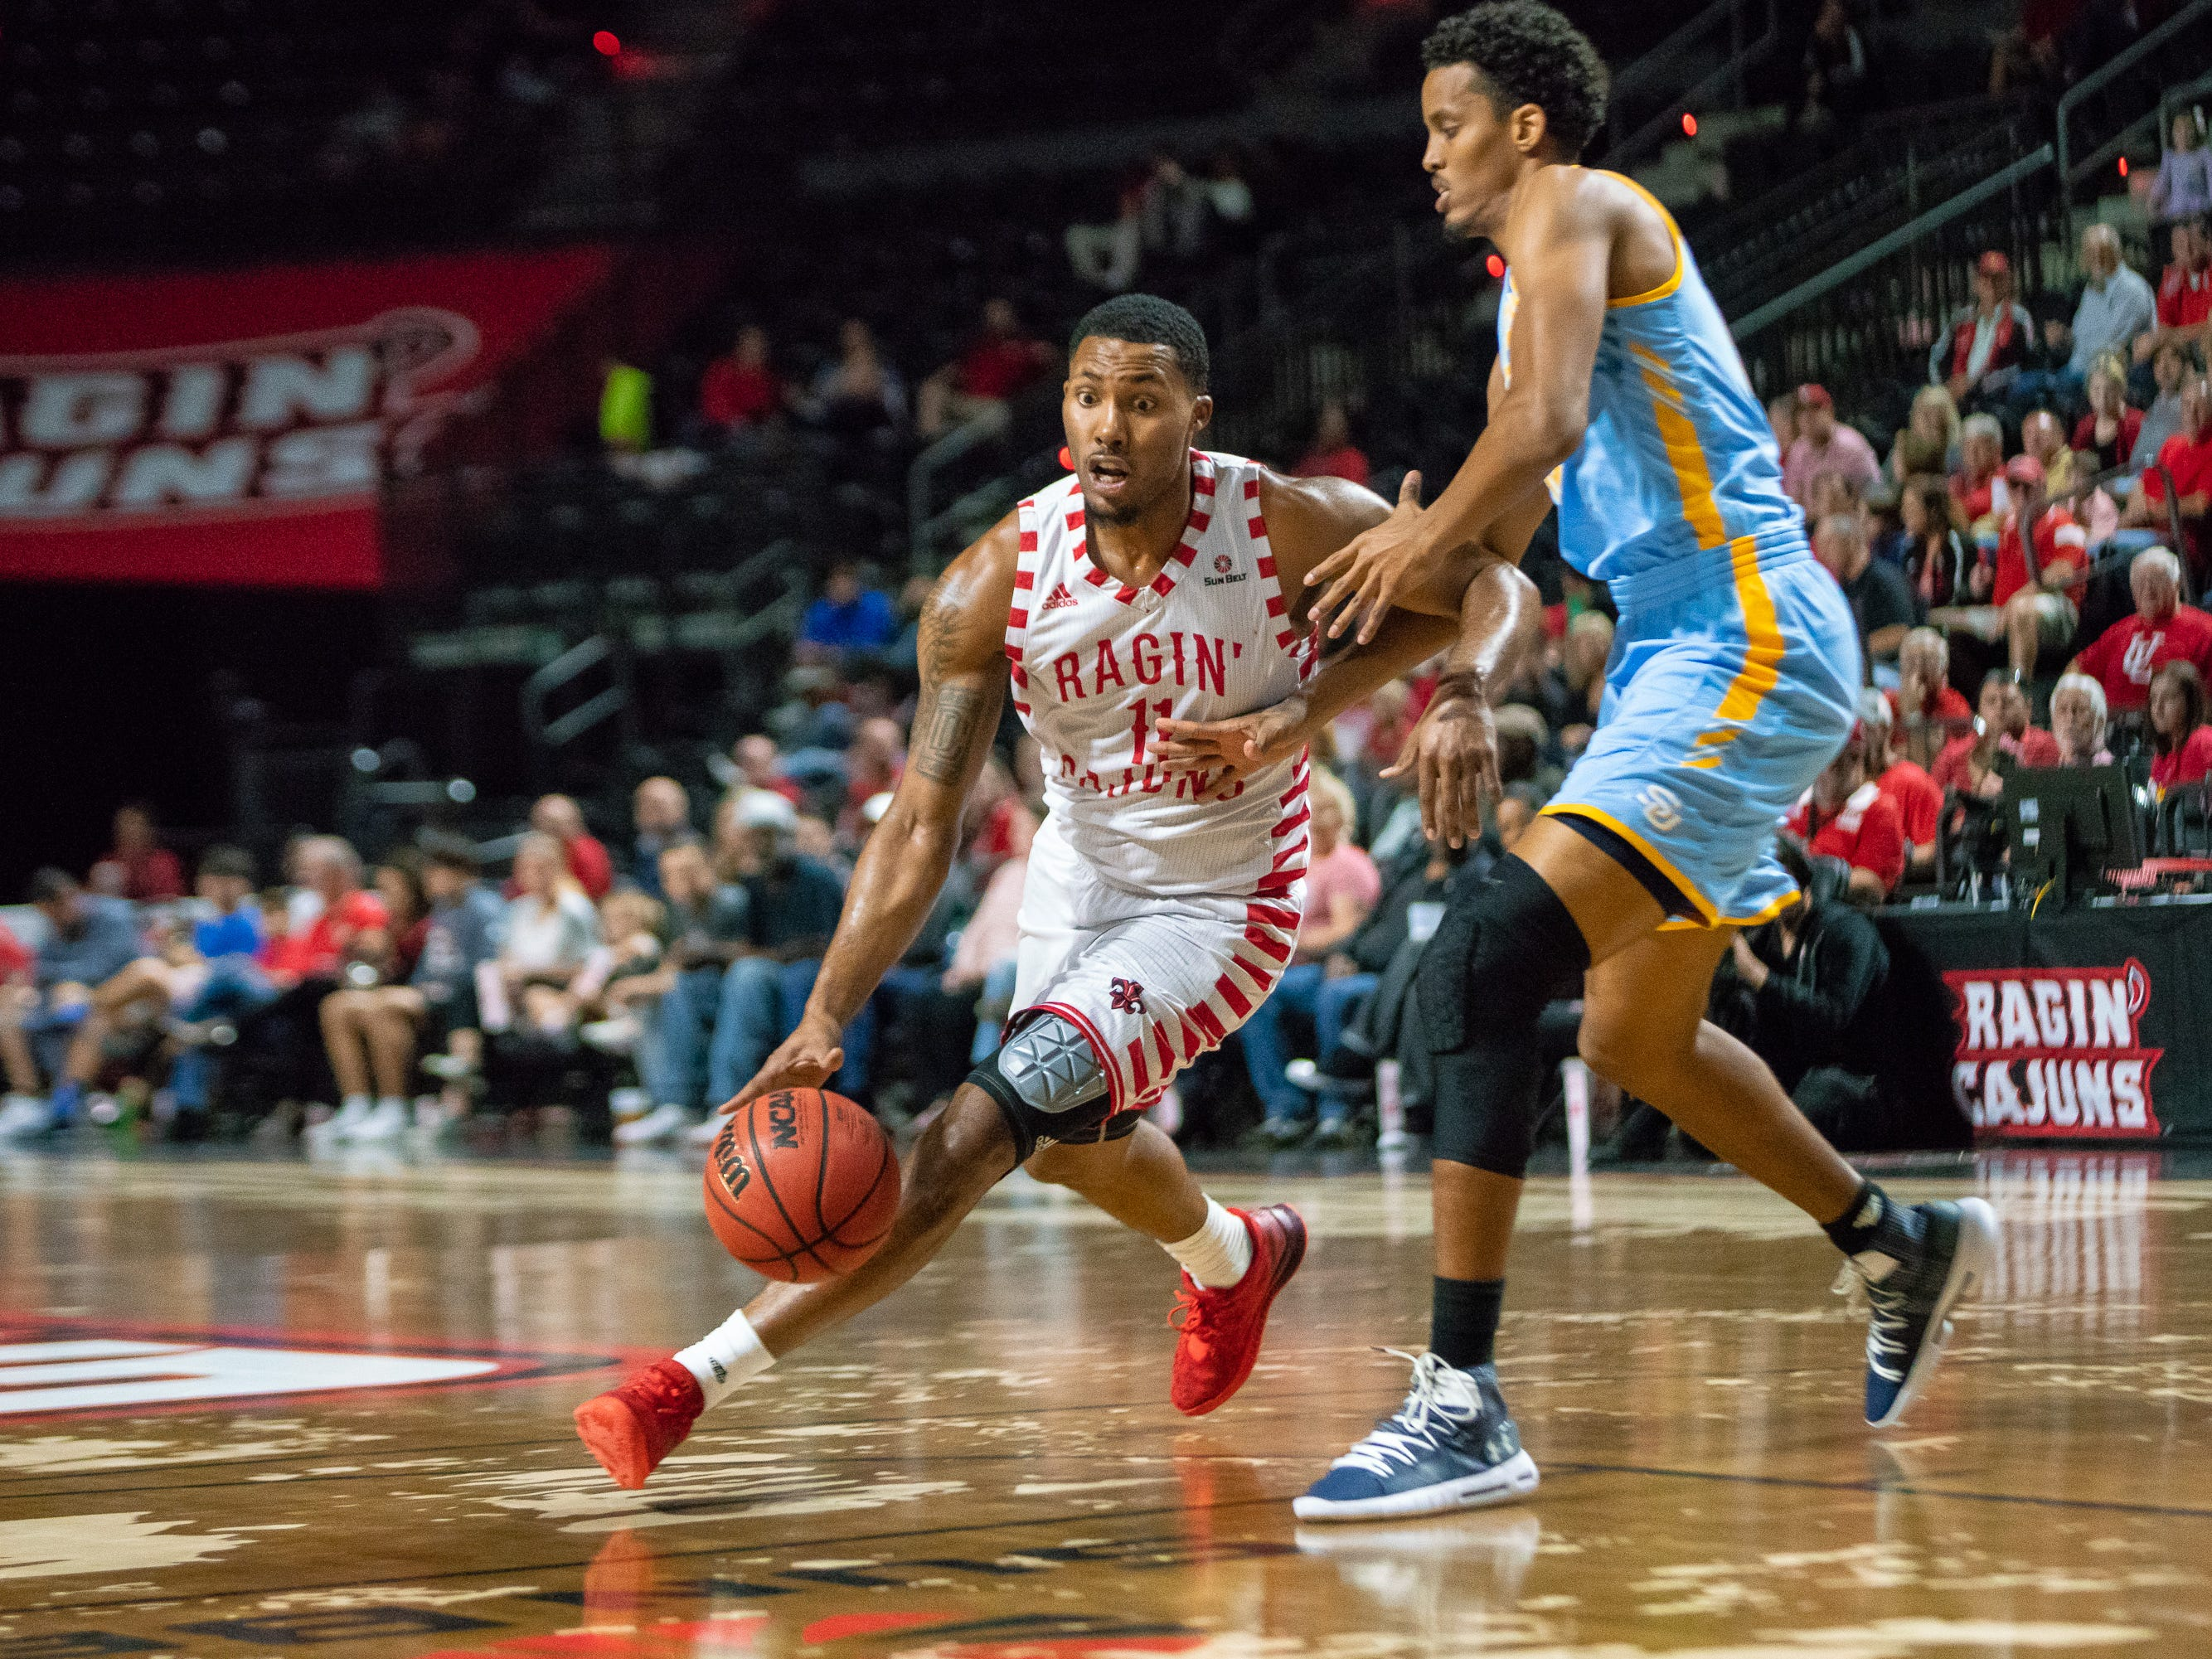 UL's Jerekius Davis fights to get to the goal as the Ragin' Cajuns play against the Southern University Jaguars at the Cajundome on December 1, 2018.